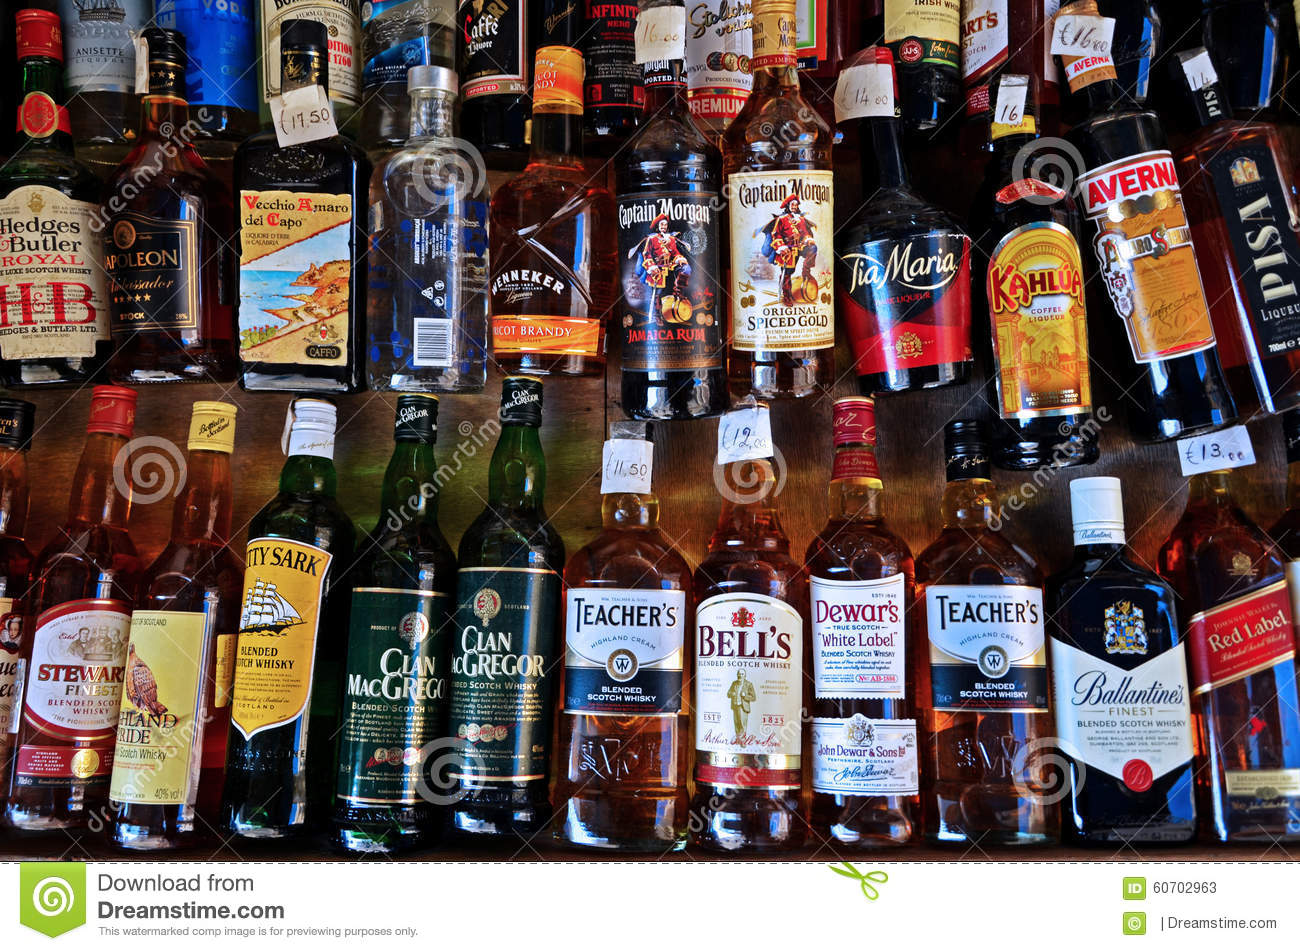 Malibu White Rum With Coconut together with mercial also Diy Bar Shelves furthermore Wall Mounted Liquor Cabi likewise Back Bar Display. on liquor bottle shelves